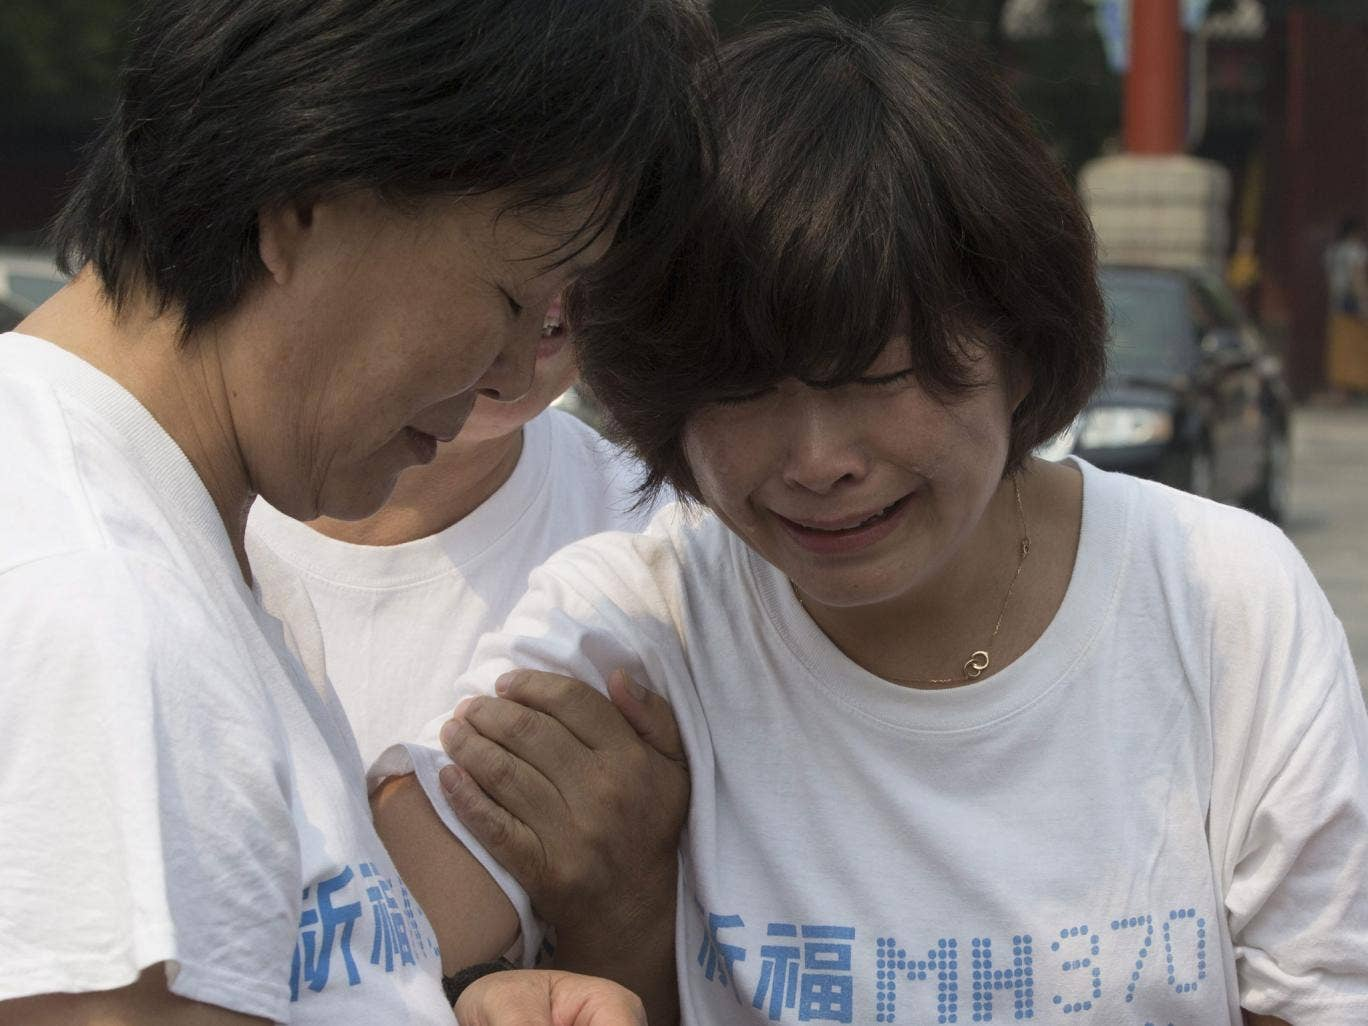 Chinese relatives of passengers of Malaysia Airlines flight MH370 console each other before entering the Lama Temple to pray in Beijing, China, 15 June 2014